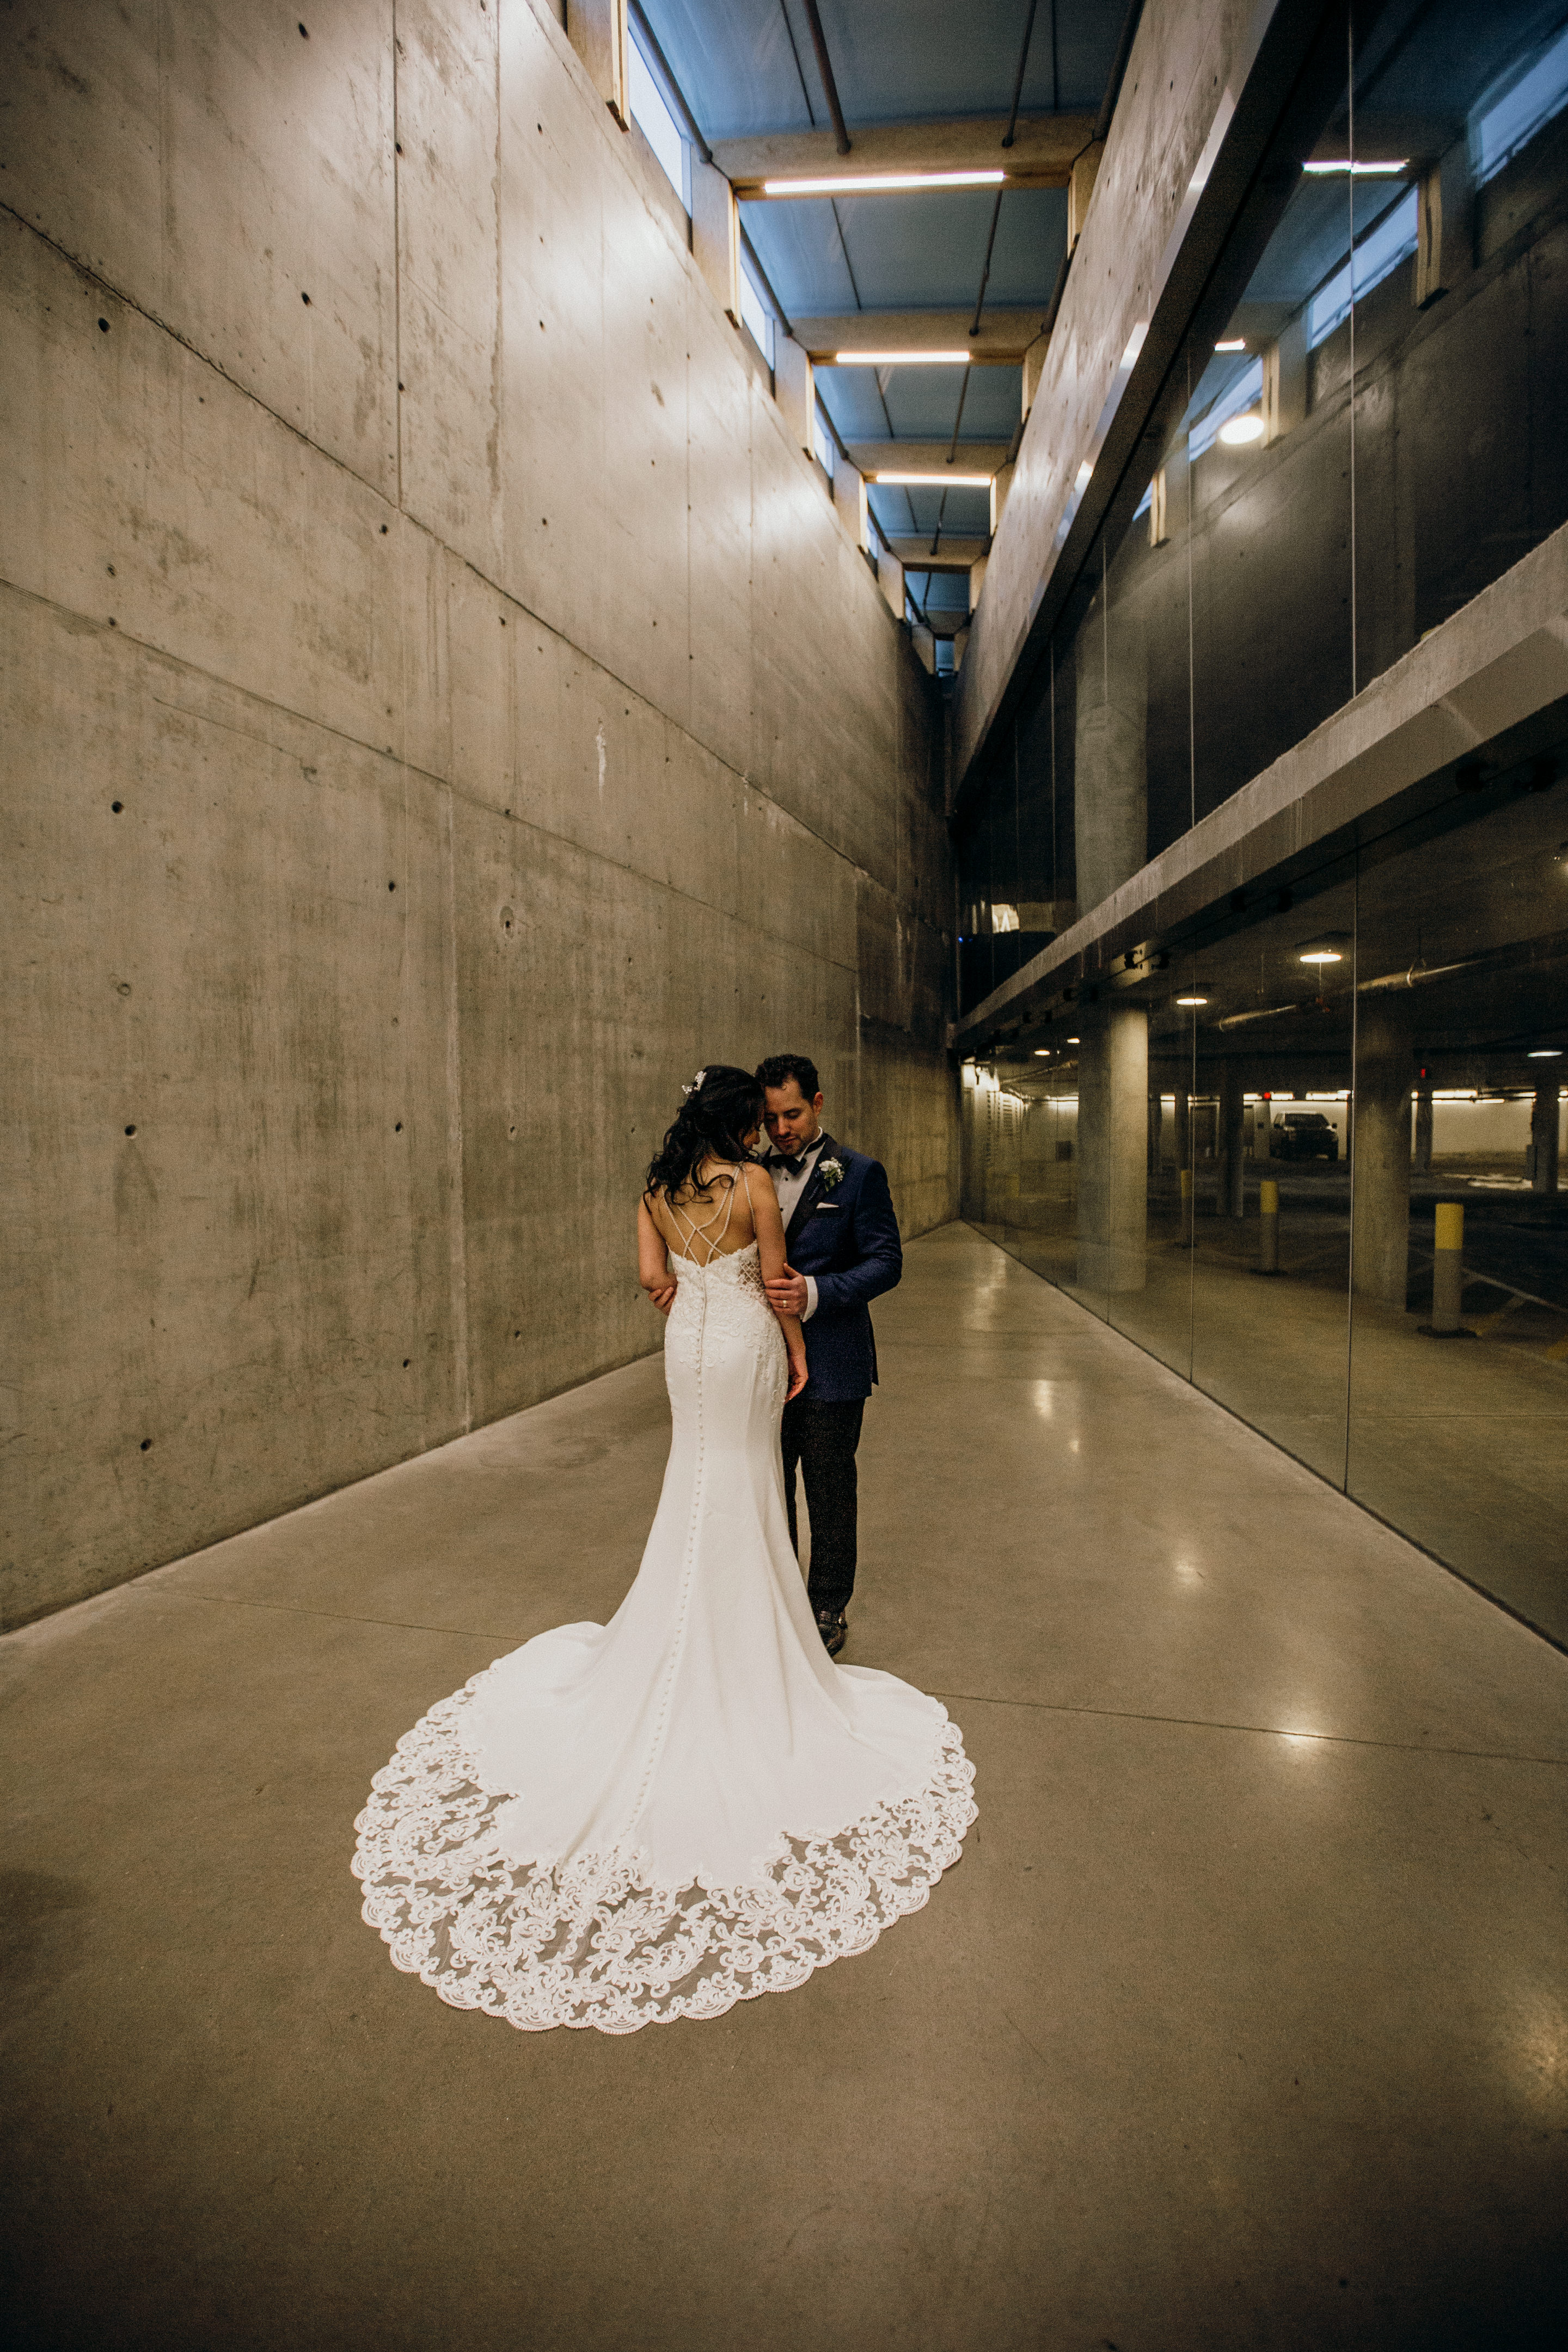 anita jeanine, anita jeanine photography Calgary photographer, best calgary wedding photographer, best calgary wedding photography, calgary photographes, calgary photogtraphy, calgary wedding, calgary wedding photographers, calgary wedding photography, centini restaurant, sait parking garage, sait parking garage wedding photos, wedding photographer, wedding photographers, wedding photography, wedding photos, www.anitajeanine.com, yyc